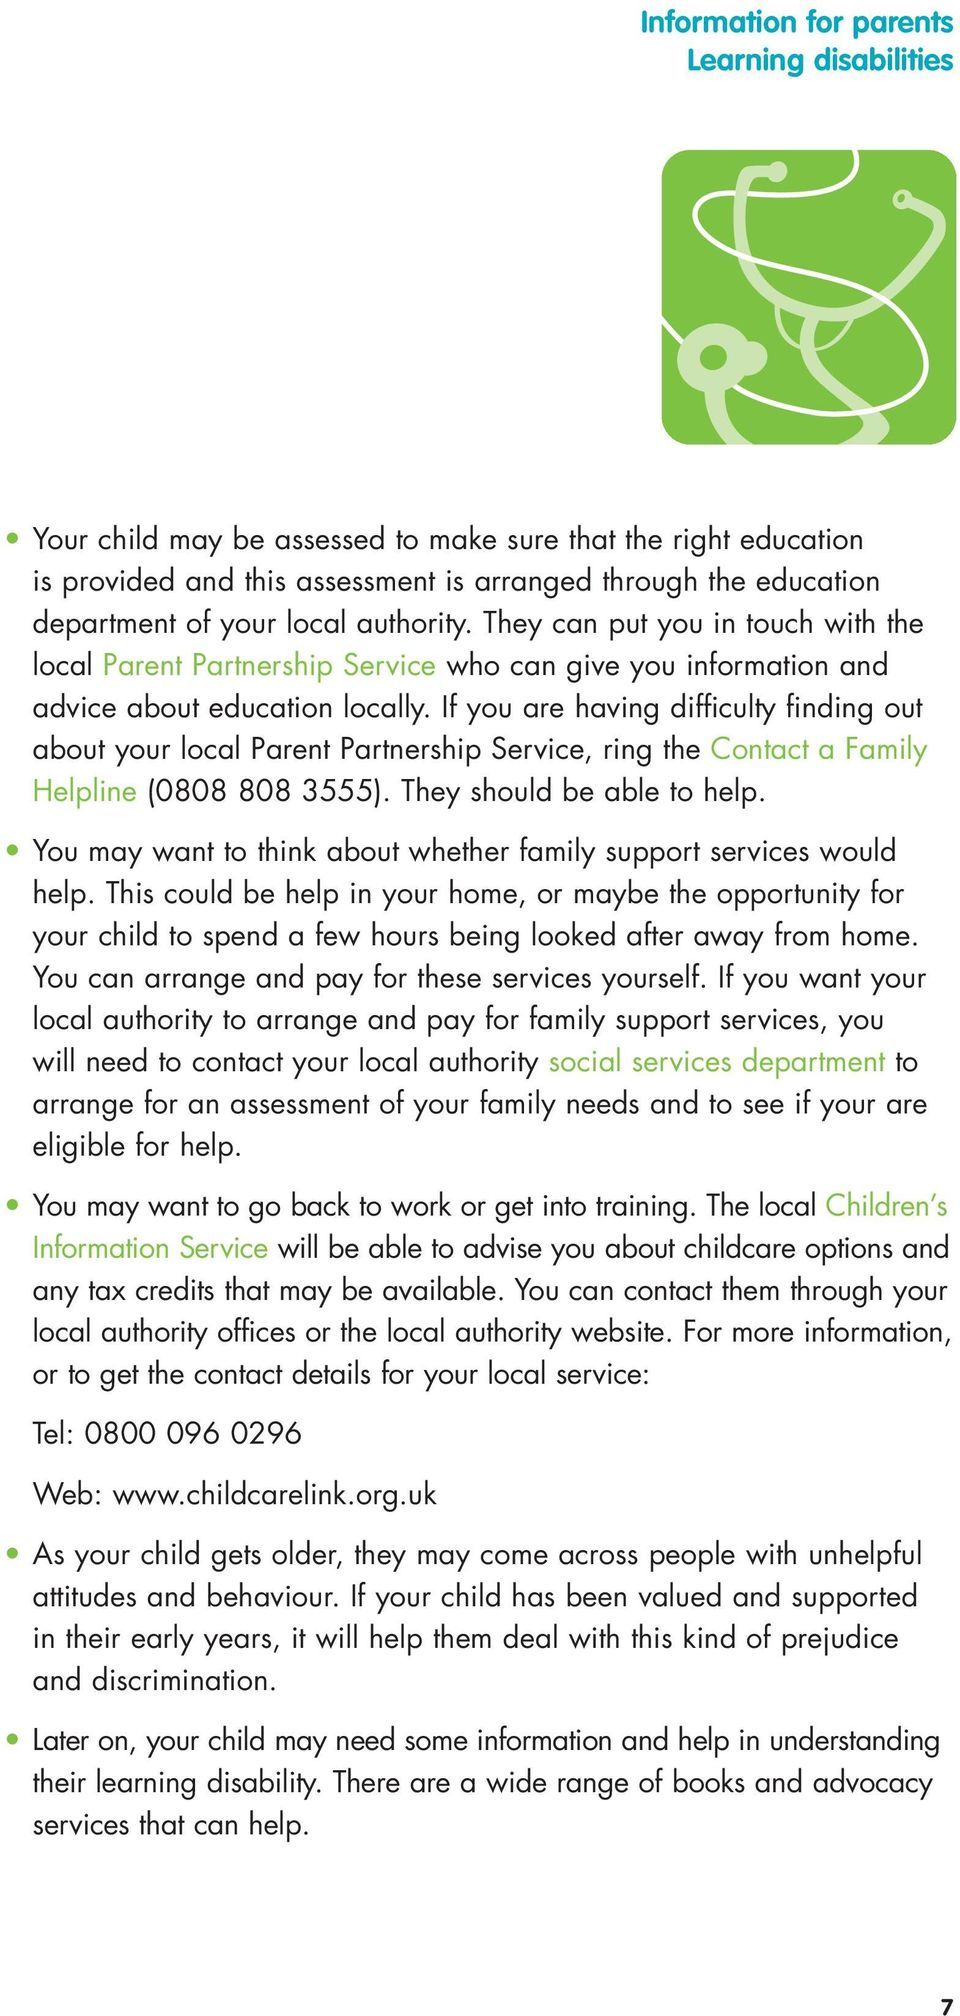 If you are having difficulty finding out about your local Parent Partnership Service, ring the Contact a Family Helpline (0808 808 3555). They should be able to help.